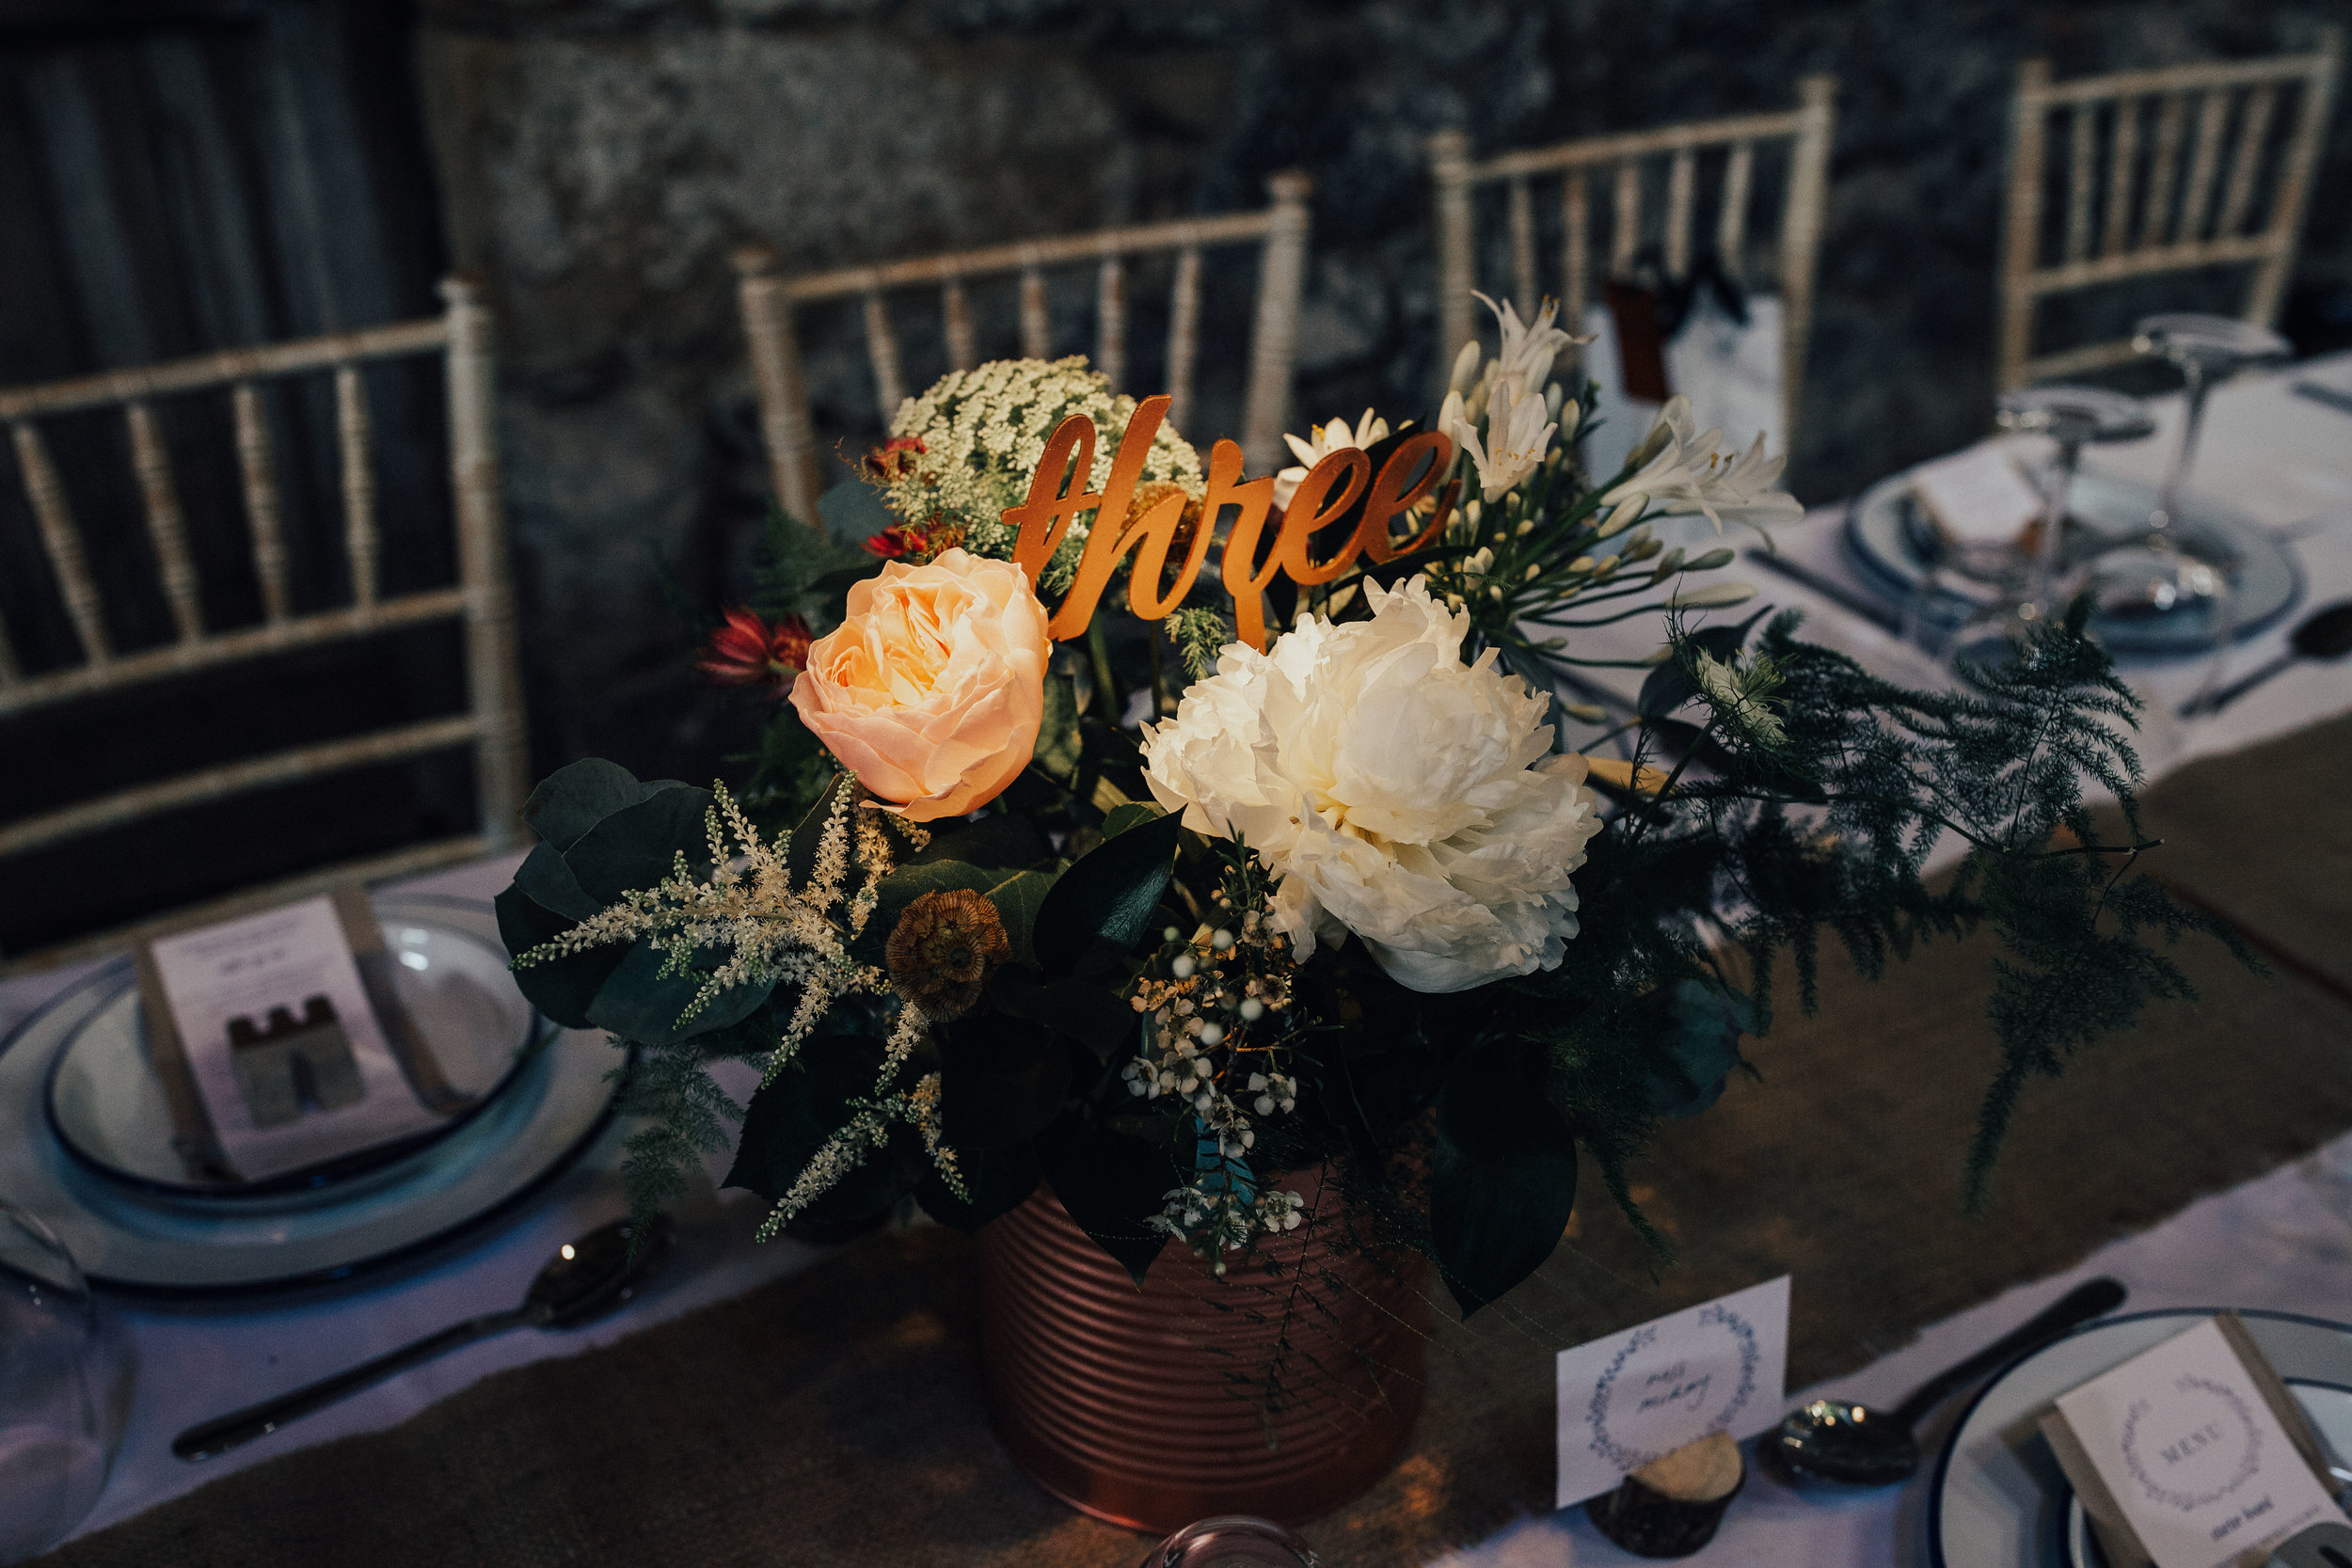 BYRE_AT_INCHYRA_WEDDING_PHOTOGRAPHER_PJ_PHILLIPS_PHOTOGRAPHY_KAYLEIGH_ANDREW_32.jpg